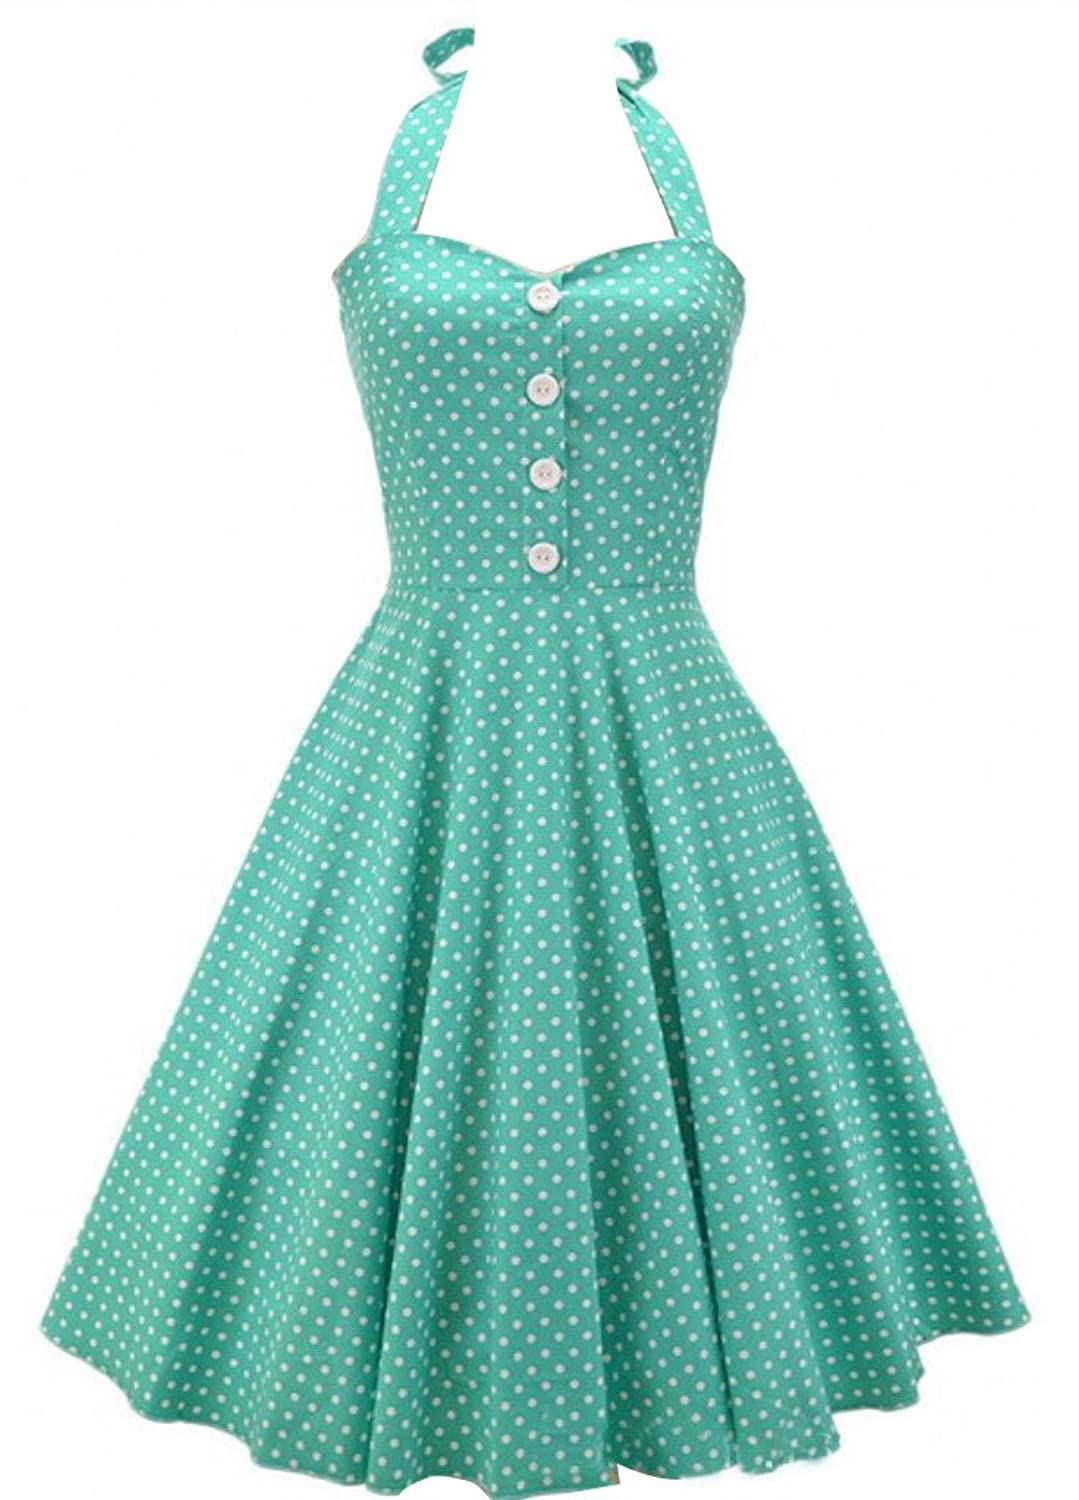 SMITHROAD Rockabilly 50er Polka Dots Punkte Kleid Abend Tanzkleid Neckholder Pin Up Taste